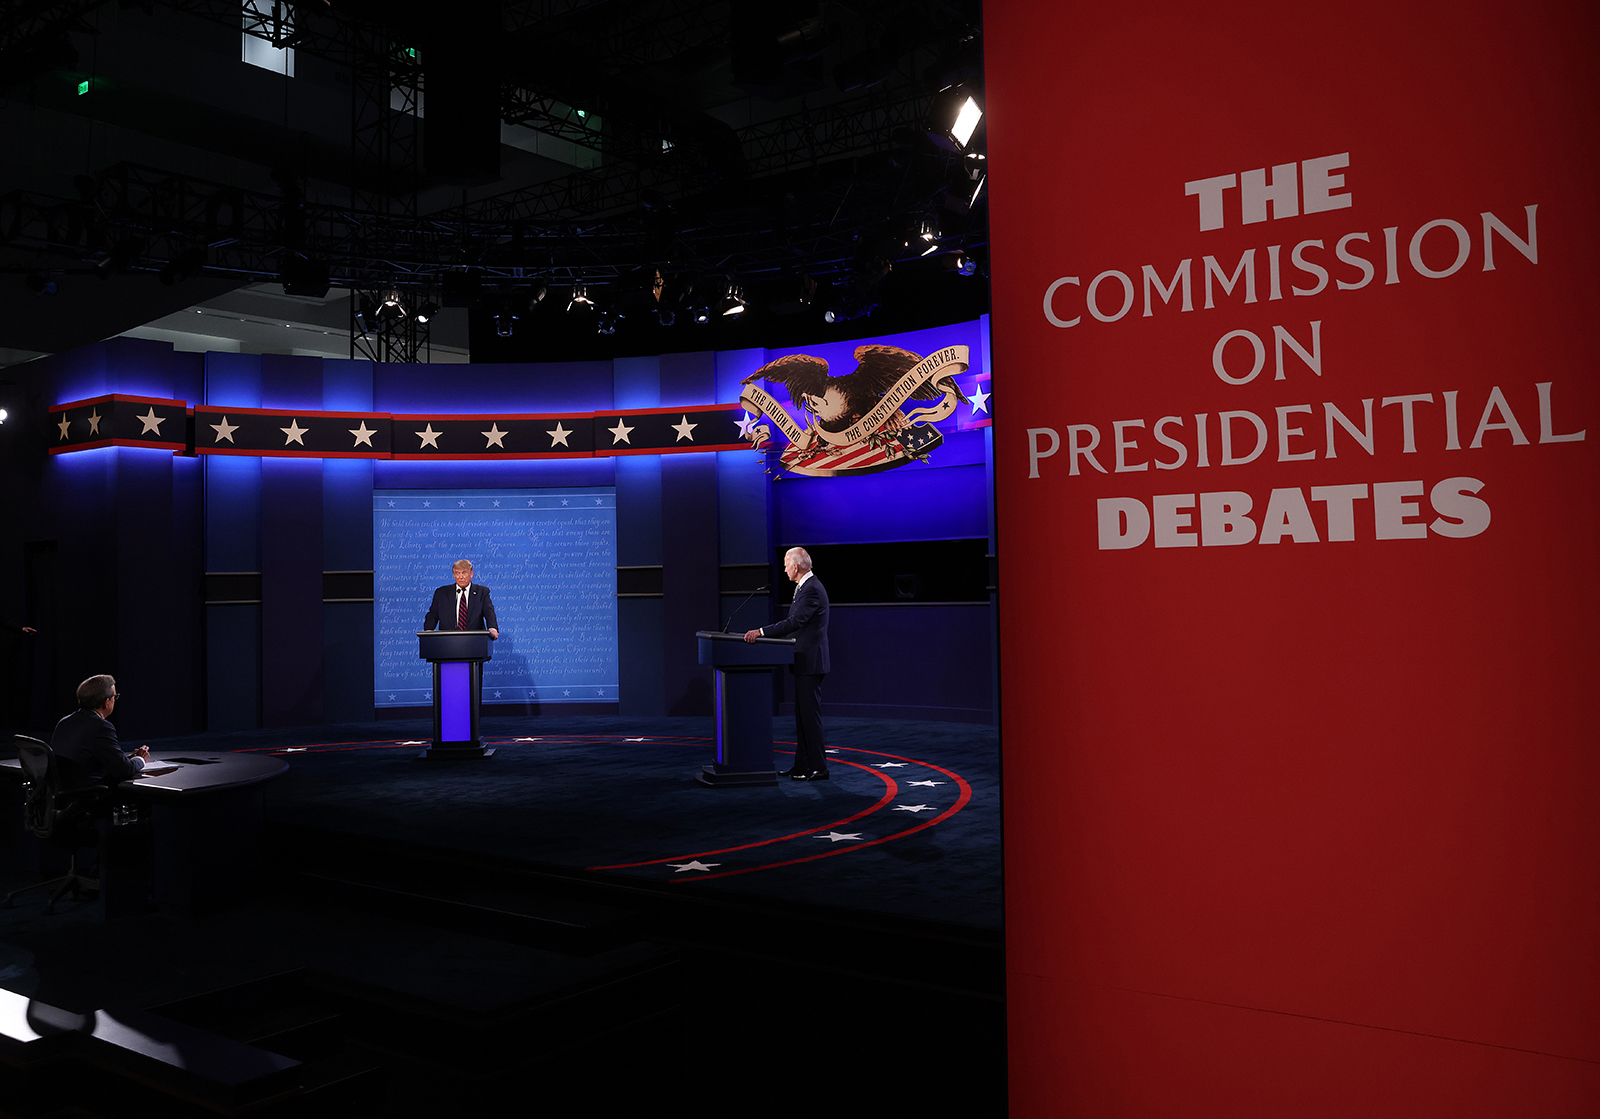 President Donald Trump and Democratic presidential nominee Joe Biden participate in the first presidential debate at the Health Education Campus of Case Western Reserve University on September 29, in Cleveland, Ohio.